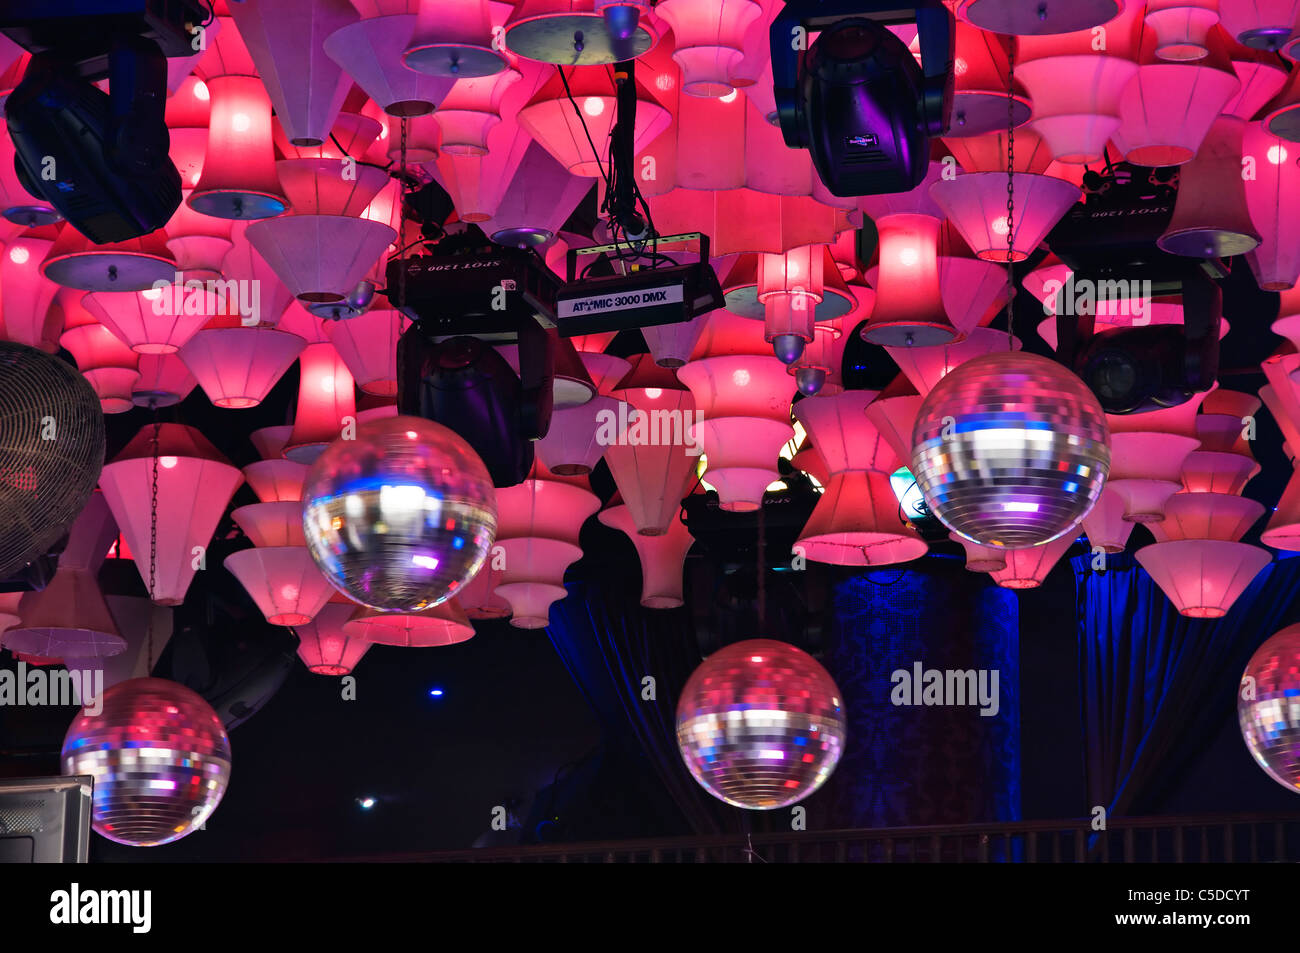 Disco ball lights stock photos disco ball lights stock images alamy spinning disco balls and lots of pink lights hang from the ceiling of a nightclub on aloadofball Images